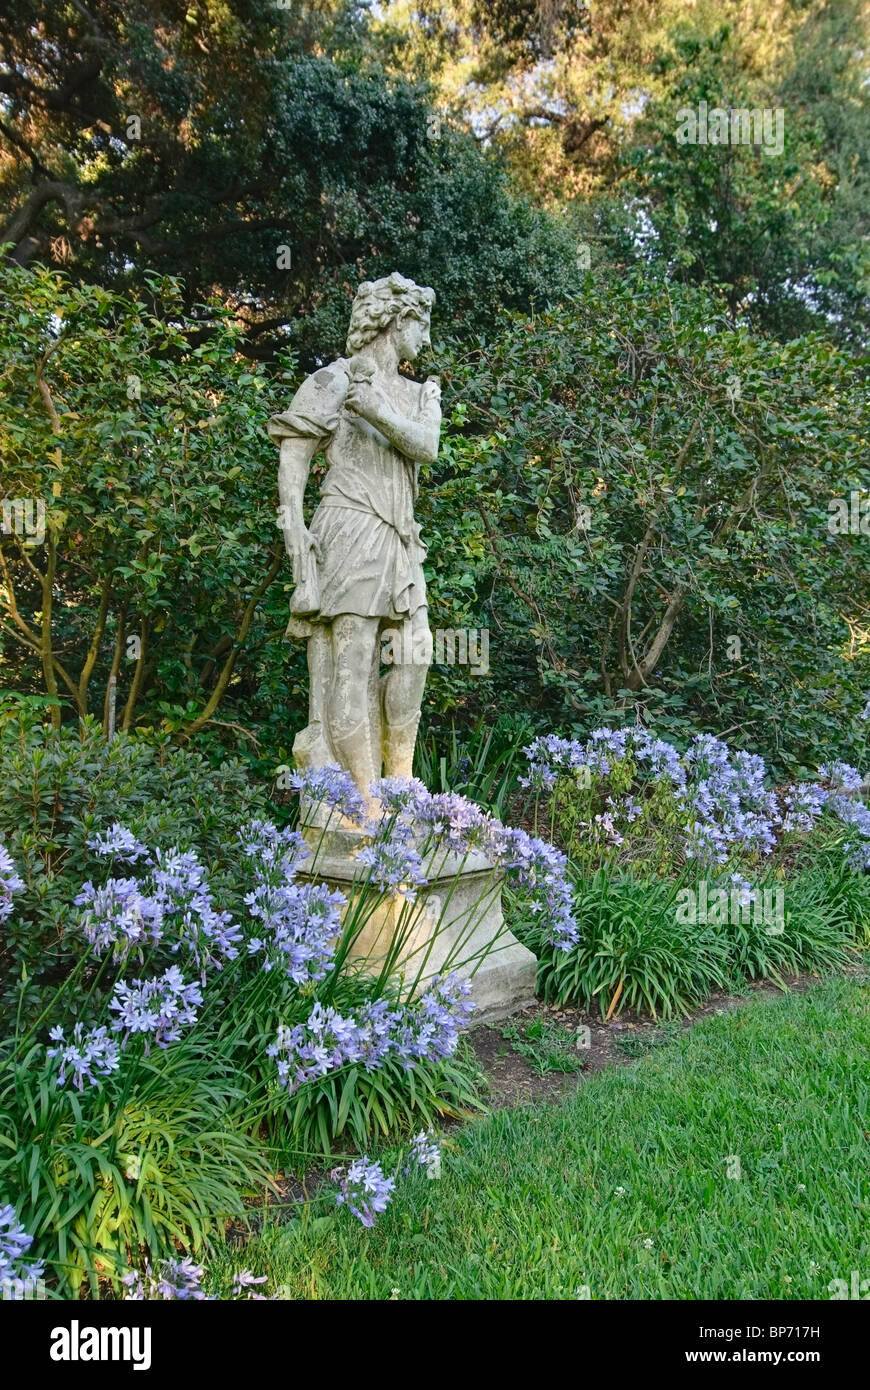 Statue at the North Vista Lawn of the Huntington Library and Botanical Gardens. - Stock Image